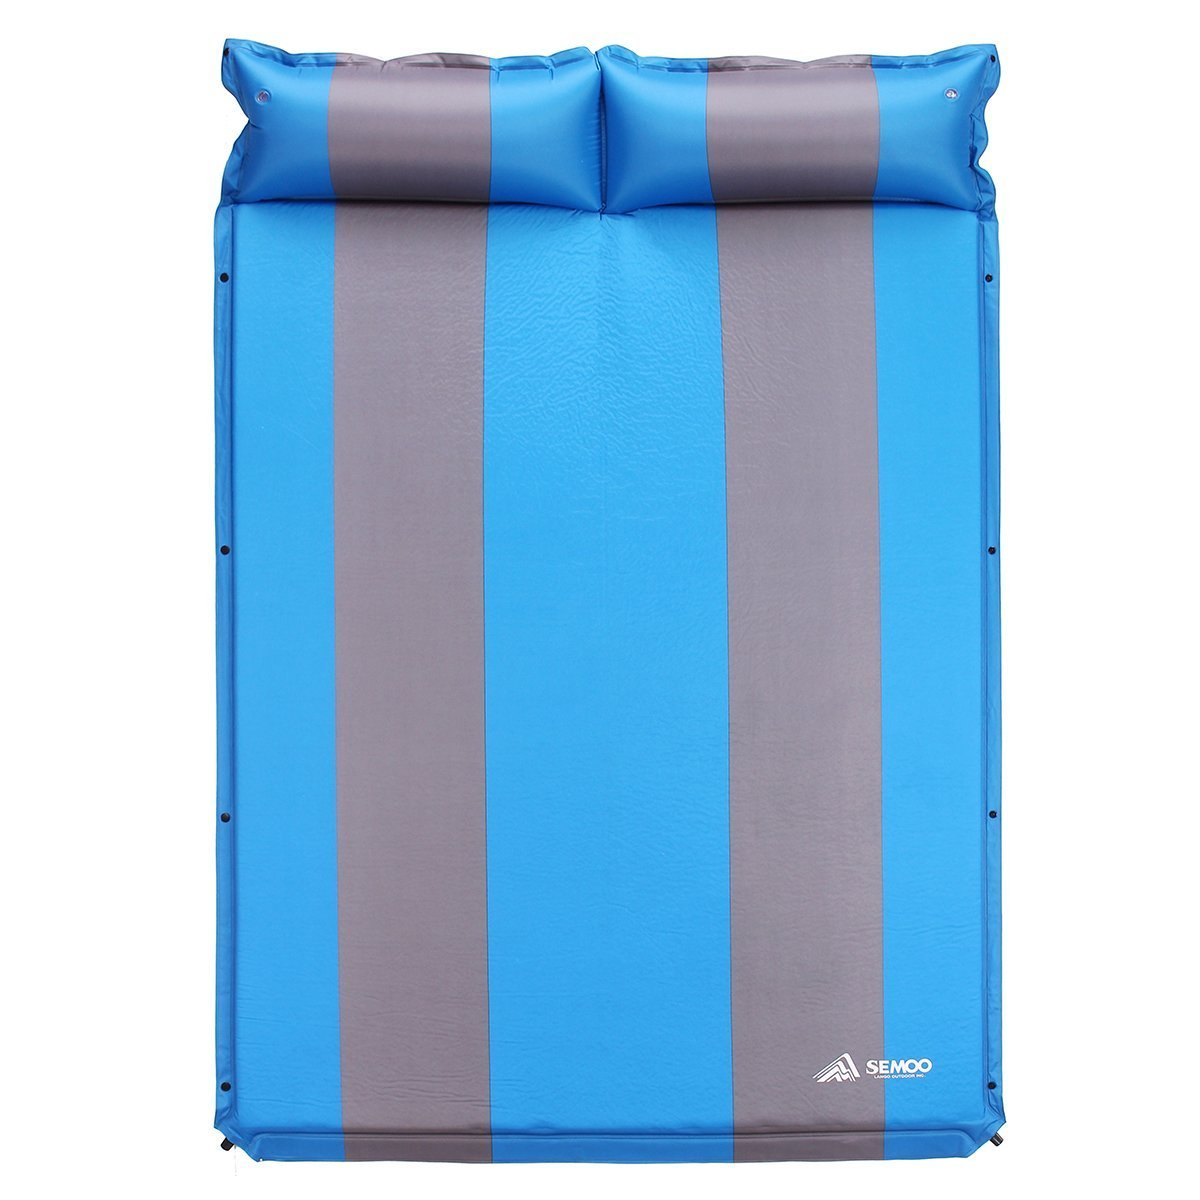 SEMOO 2 Person Self-Inflating Camping Sleeping Pads, 190T Polyester Water Repellent Coating Mat with Attached Inflatable Pillow by SEMOO